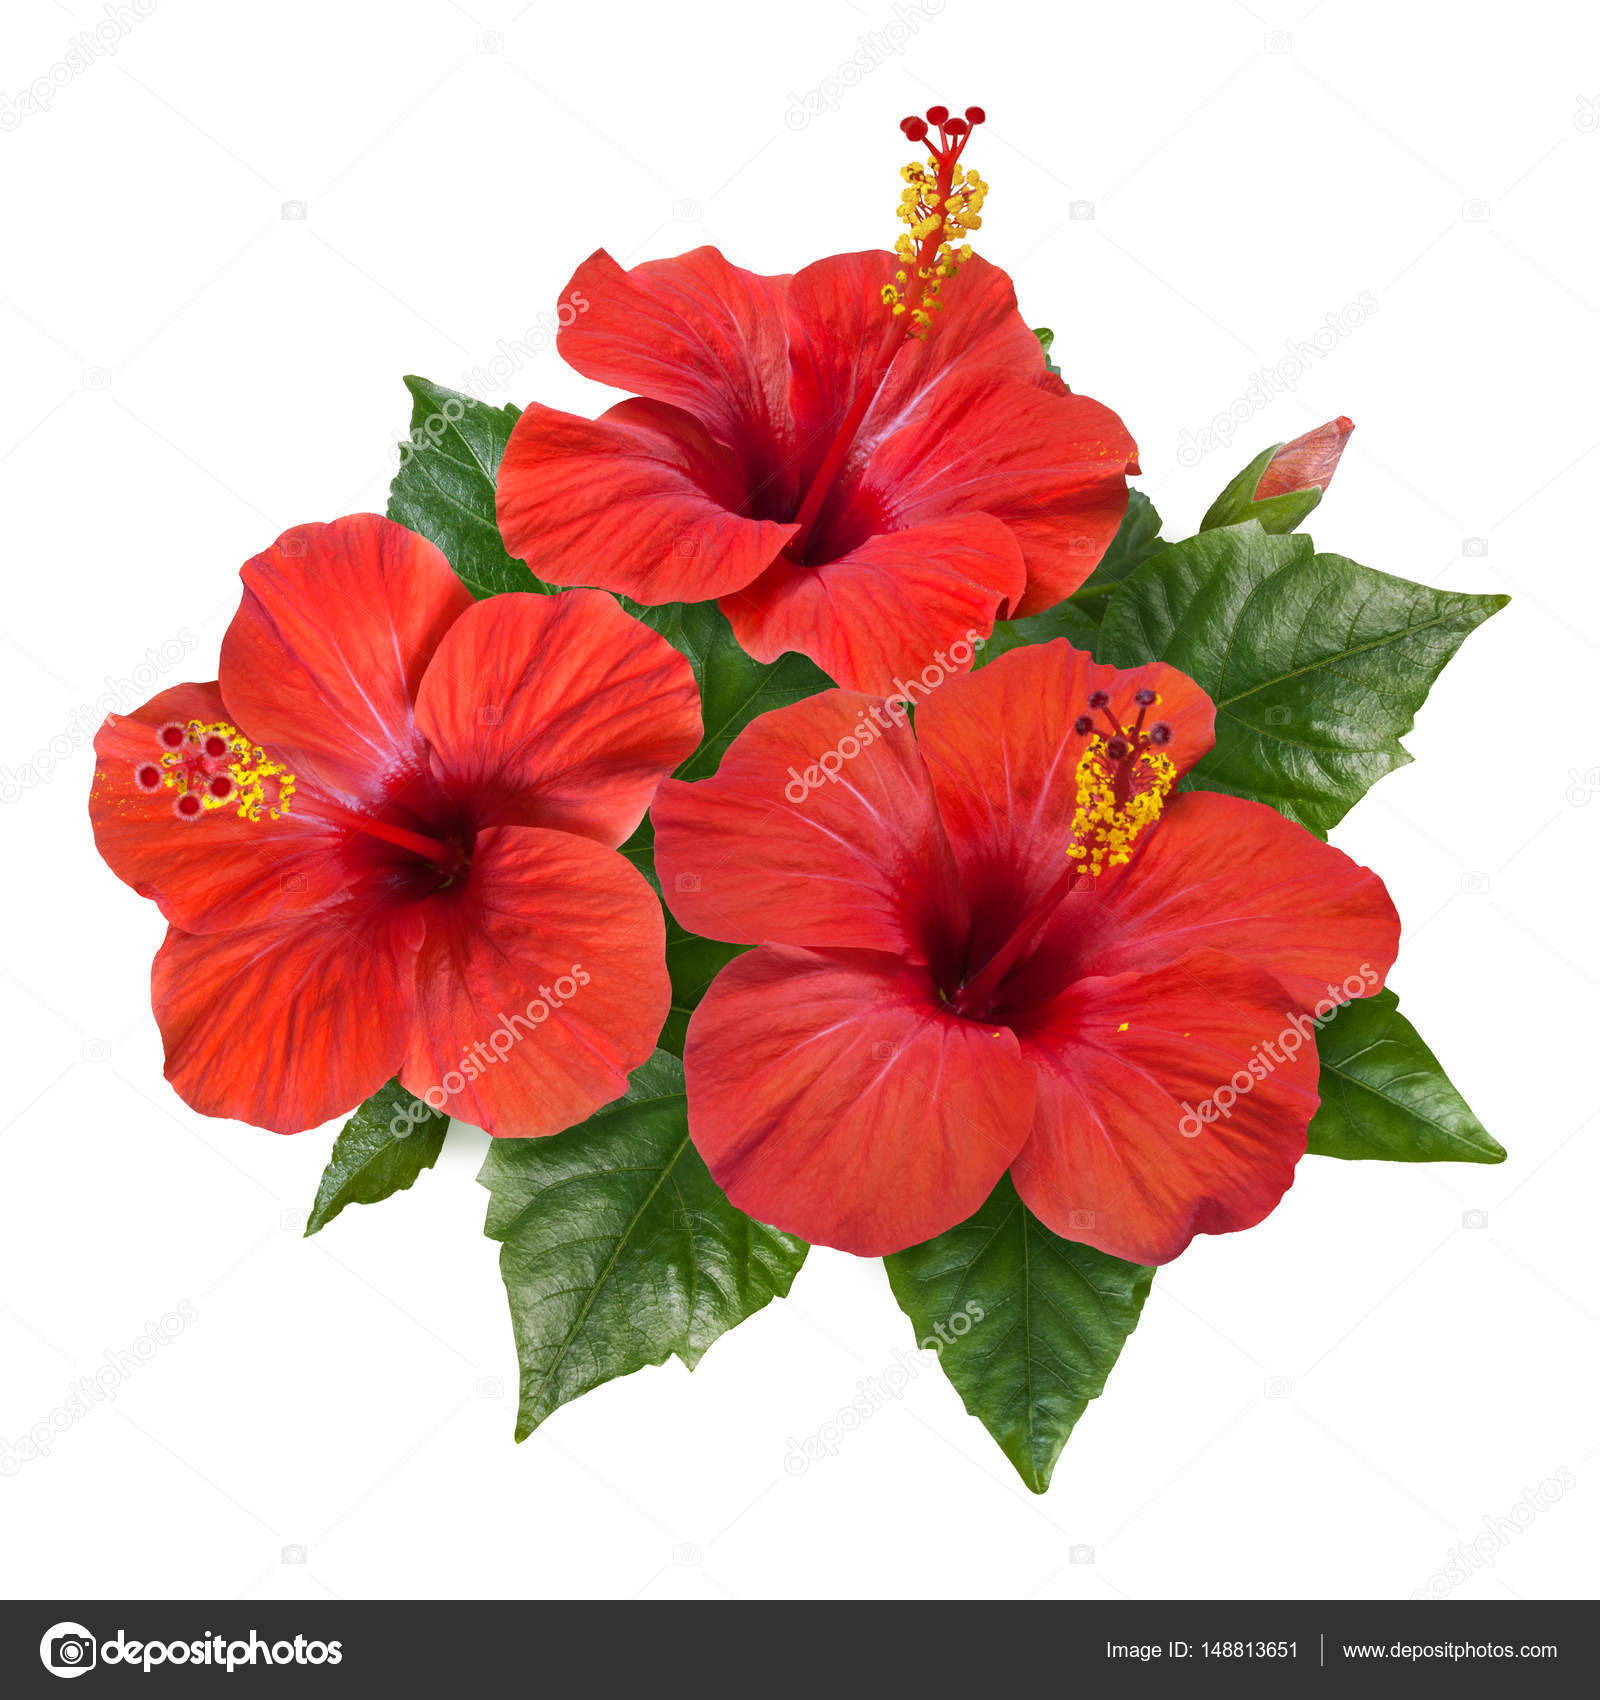 Red Hibiscus Flowers Leaves And Buds Stock Photo Tkorop 148813651